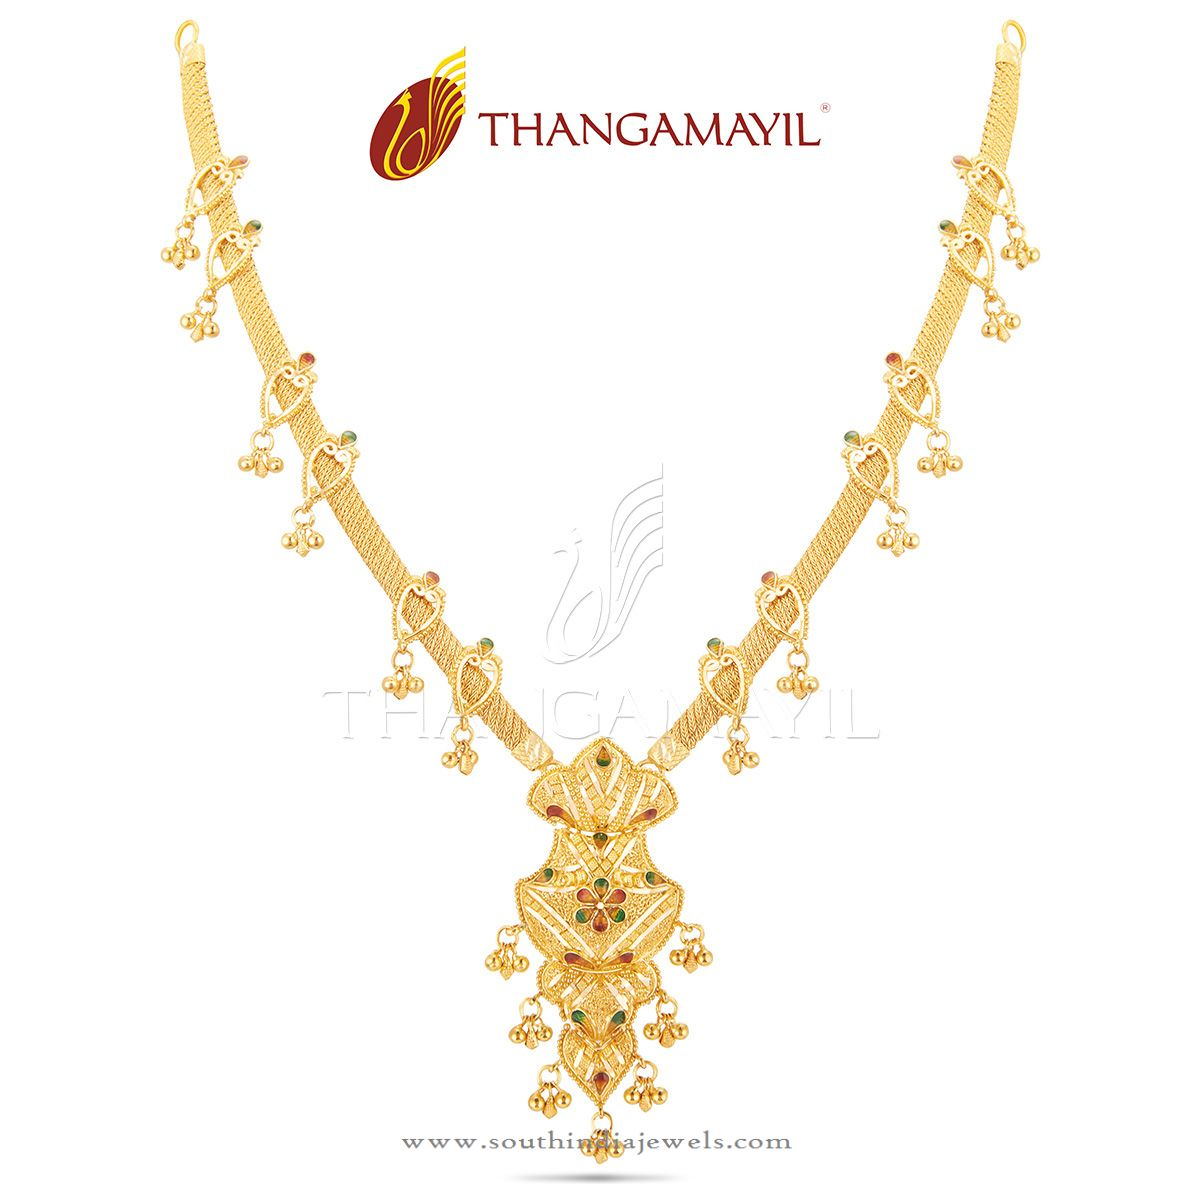 imitation weight jewelsmart one collections plated light necklace gold finish latest gram jewellery forming